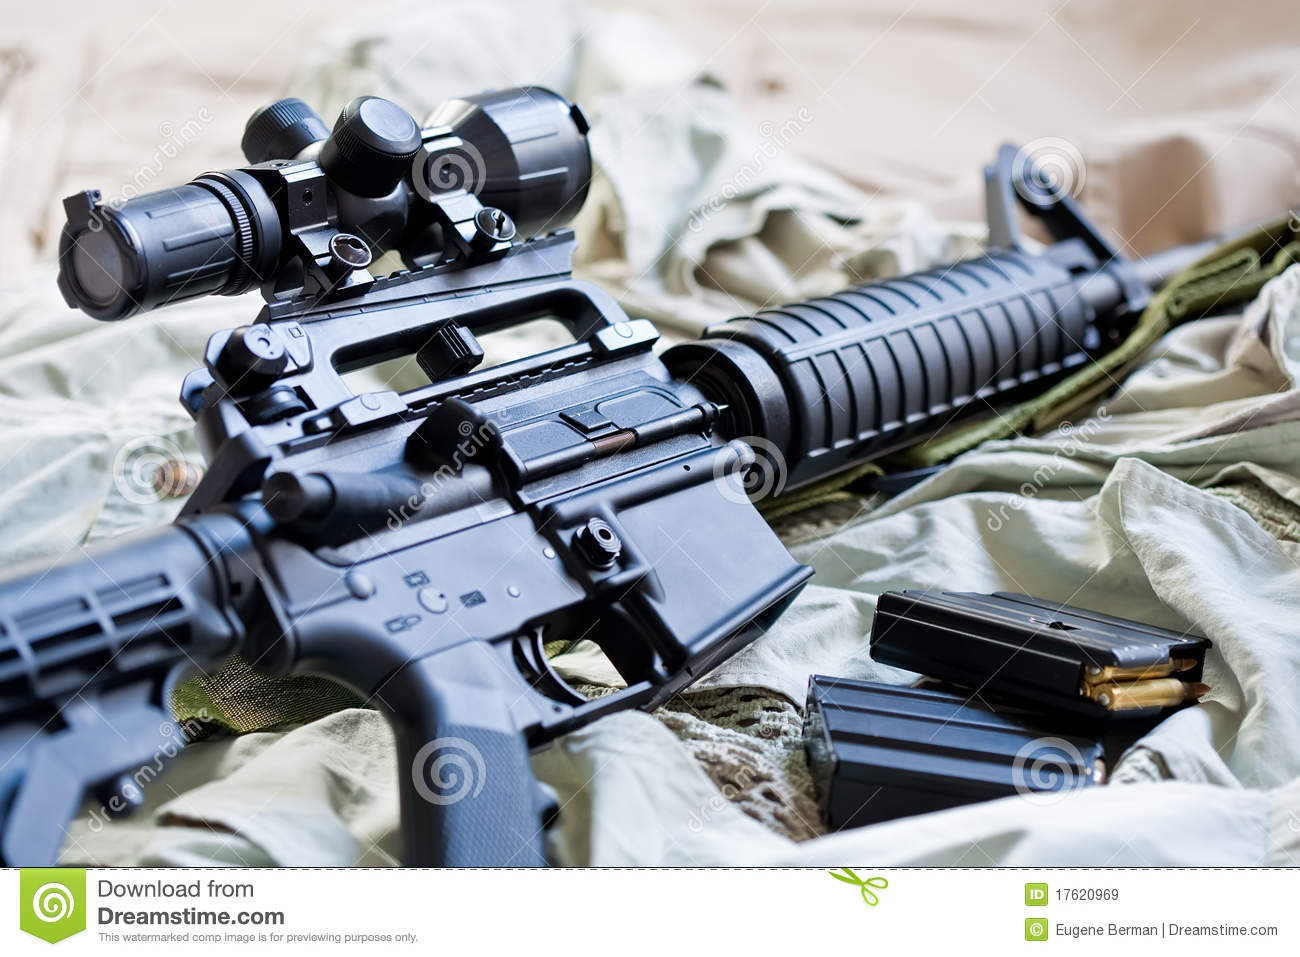 AR-15 rifle and magazines